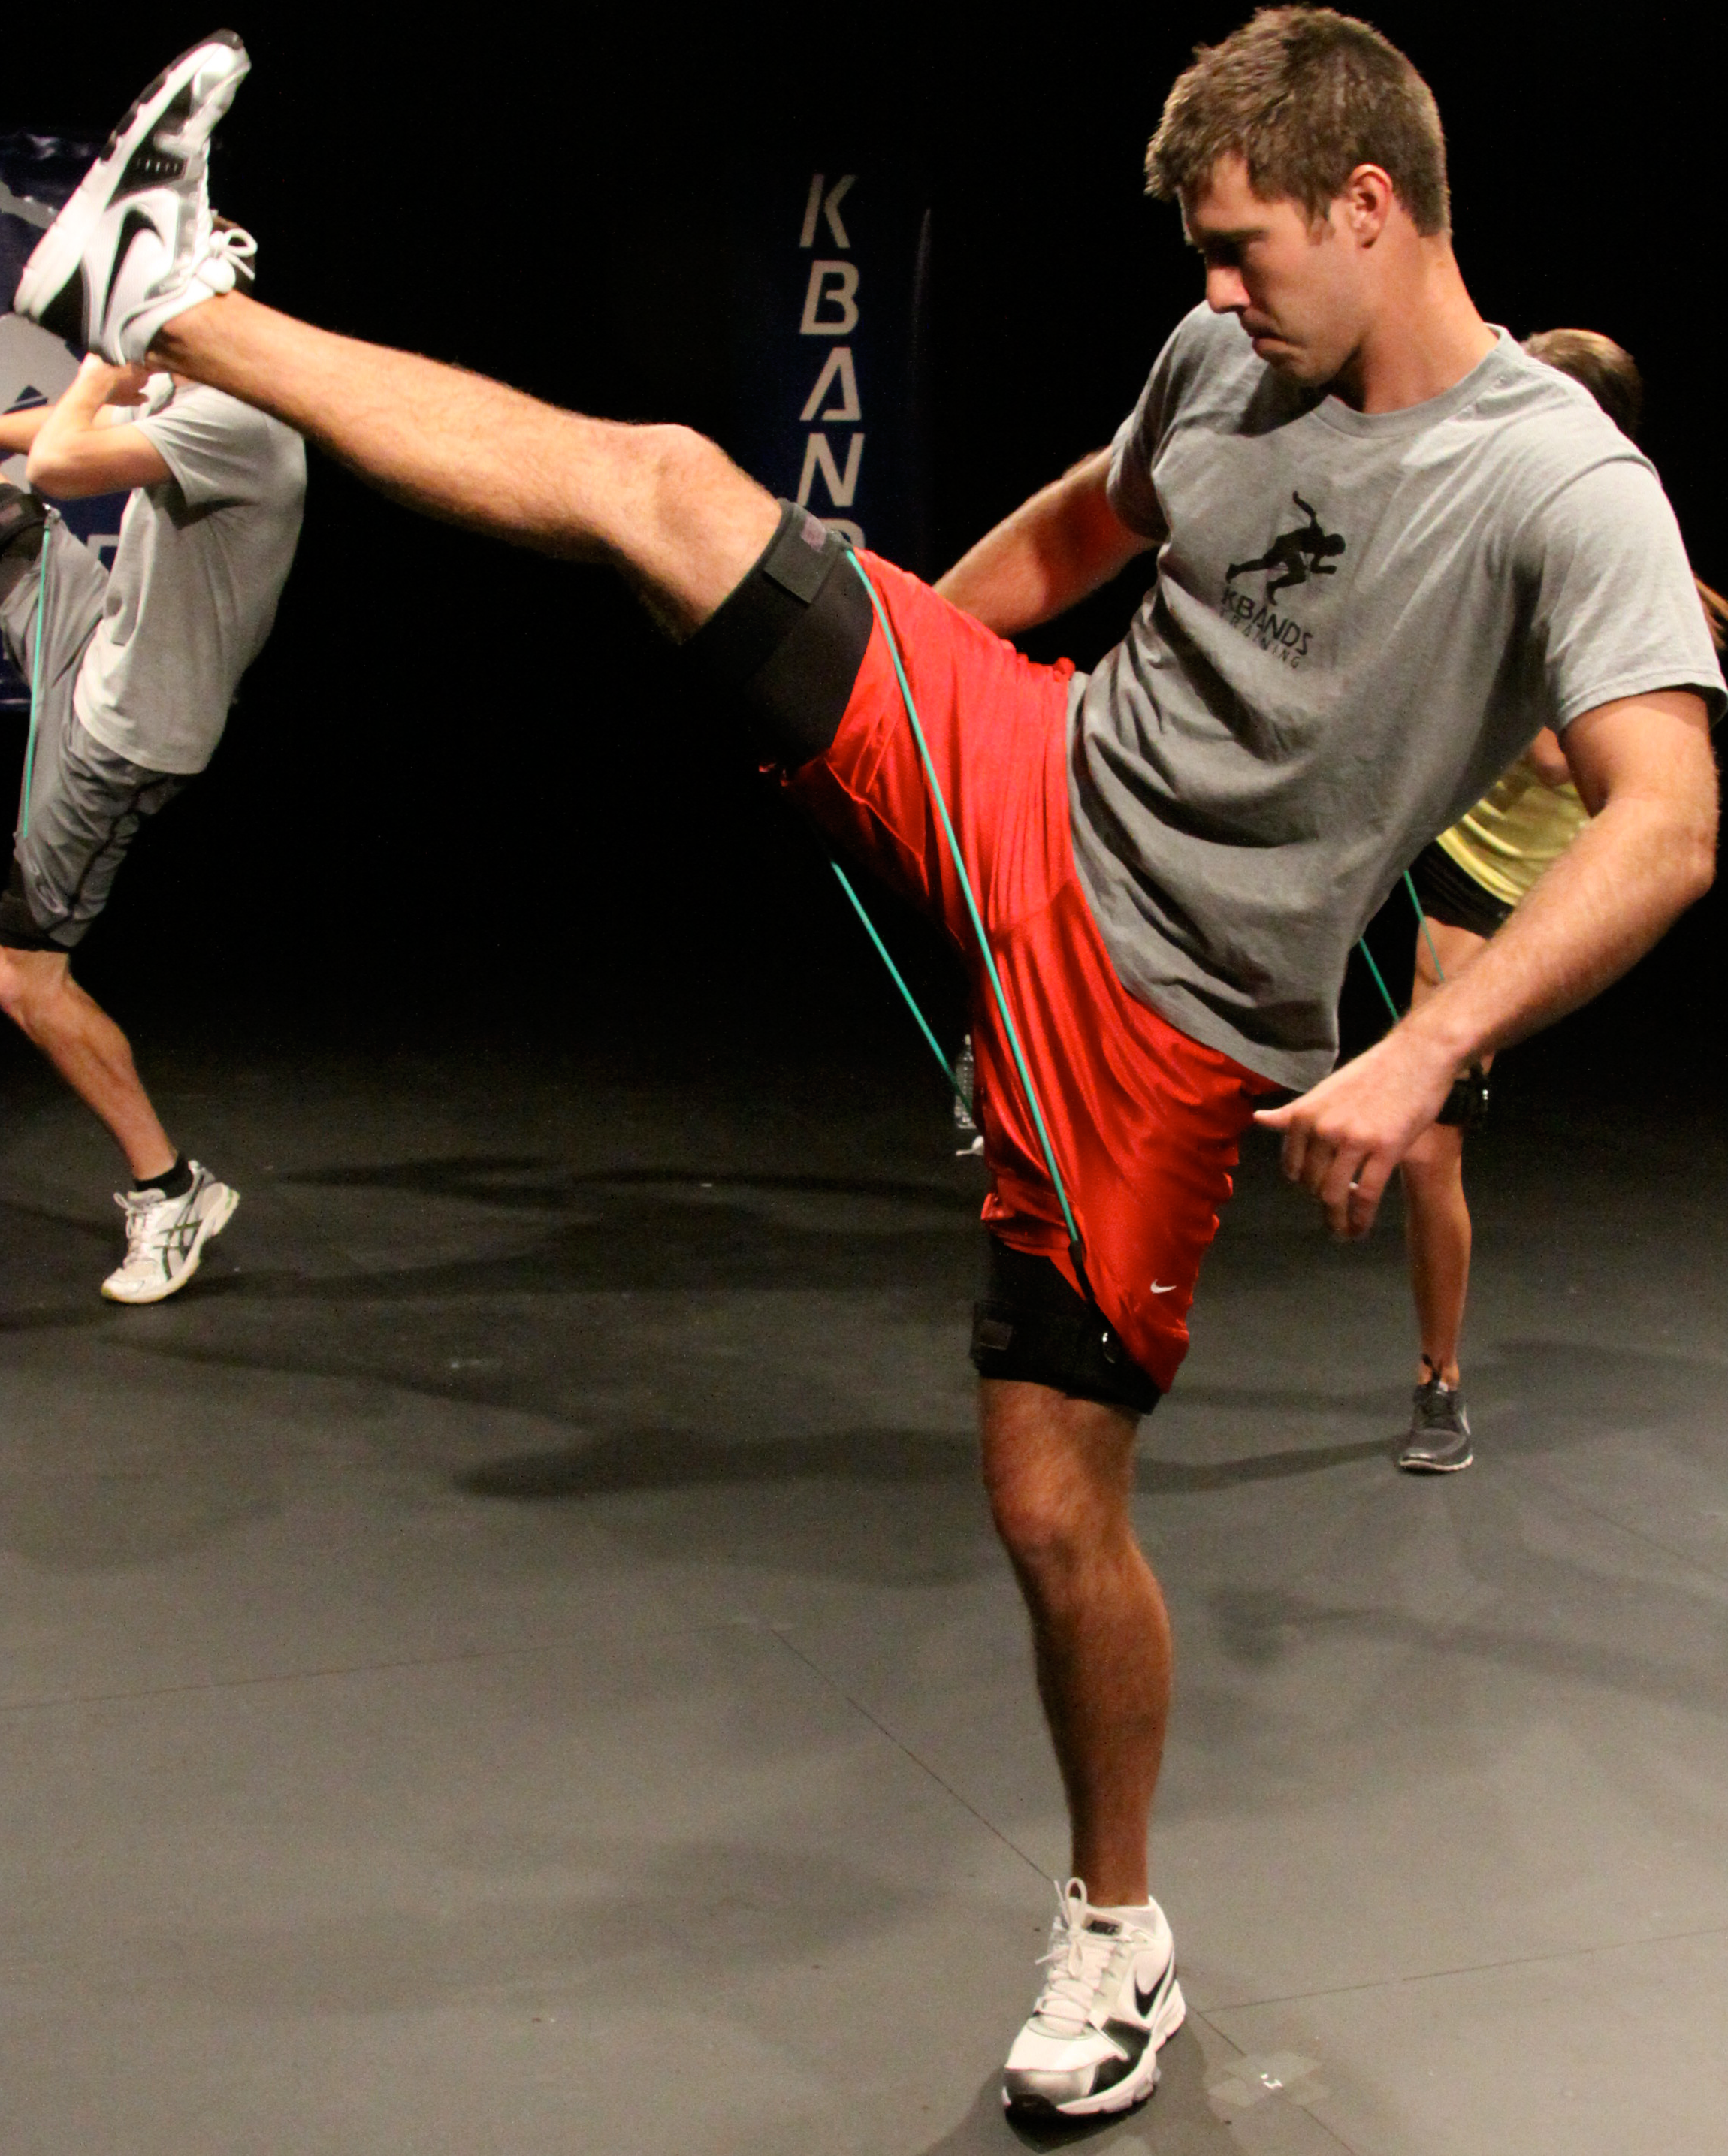 guy-high-leg-kick-with-bands.png